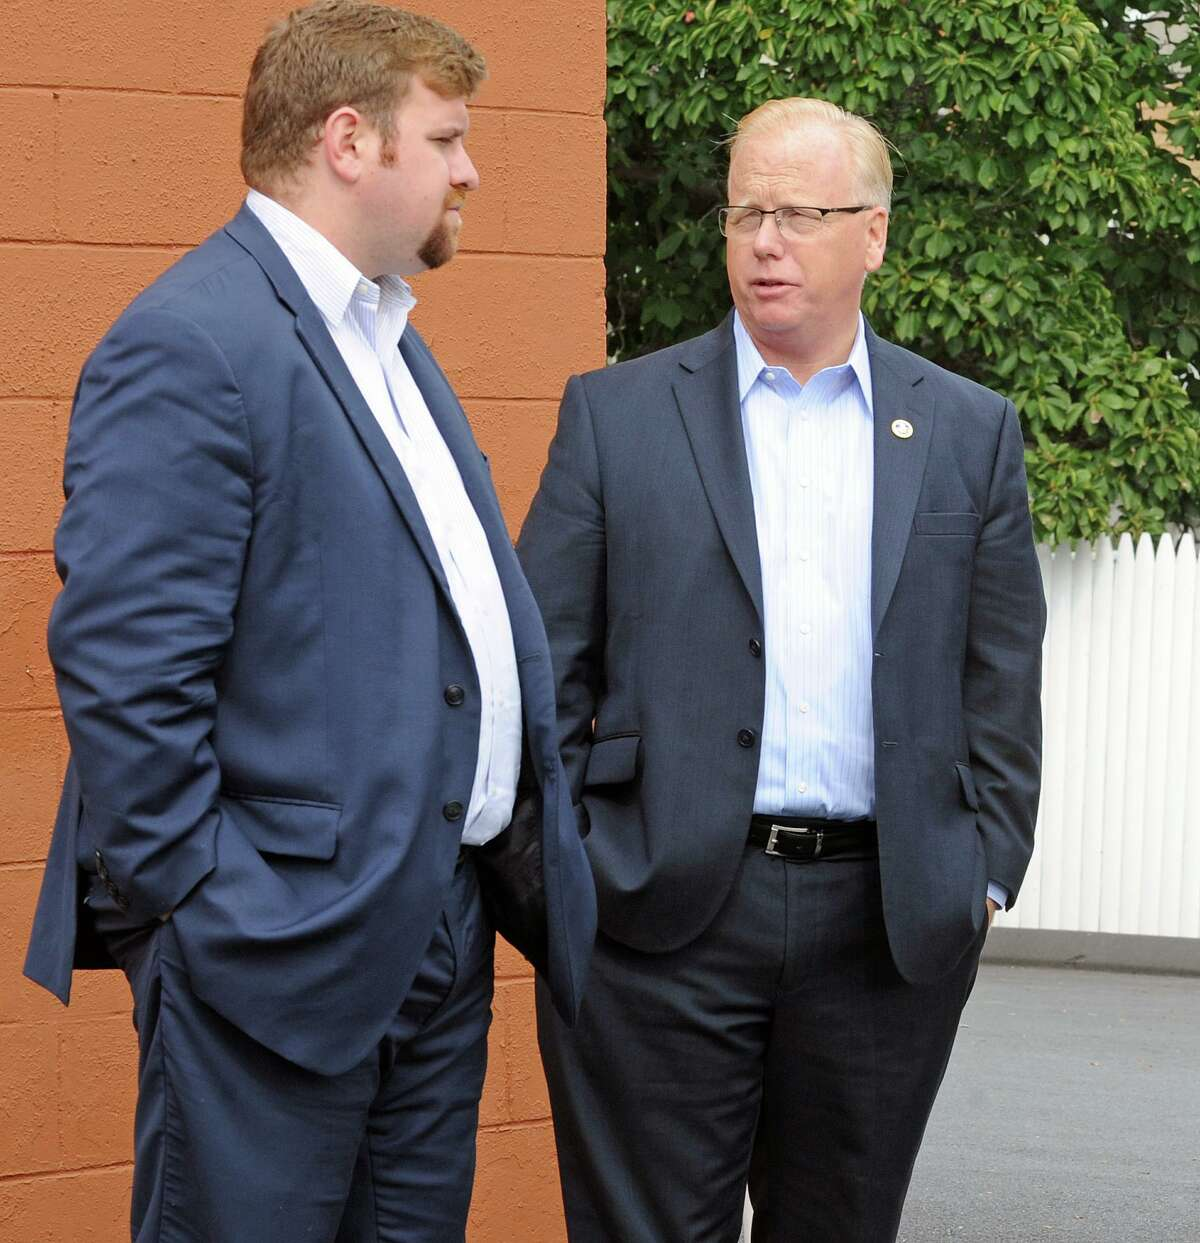 P.J. Prunty, left, executive director of the Greater Danbury Chamber of Commerce, and Danbury Mayor Mark Boughton in a 2014 file photo.